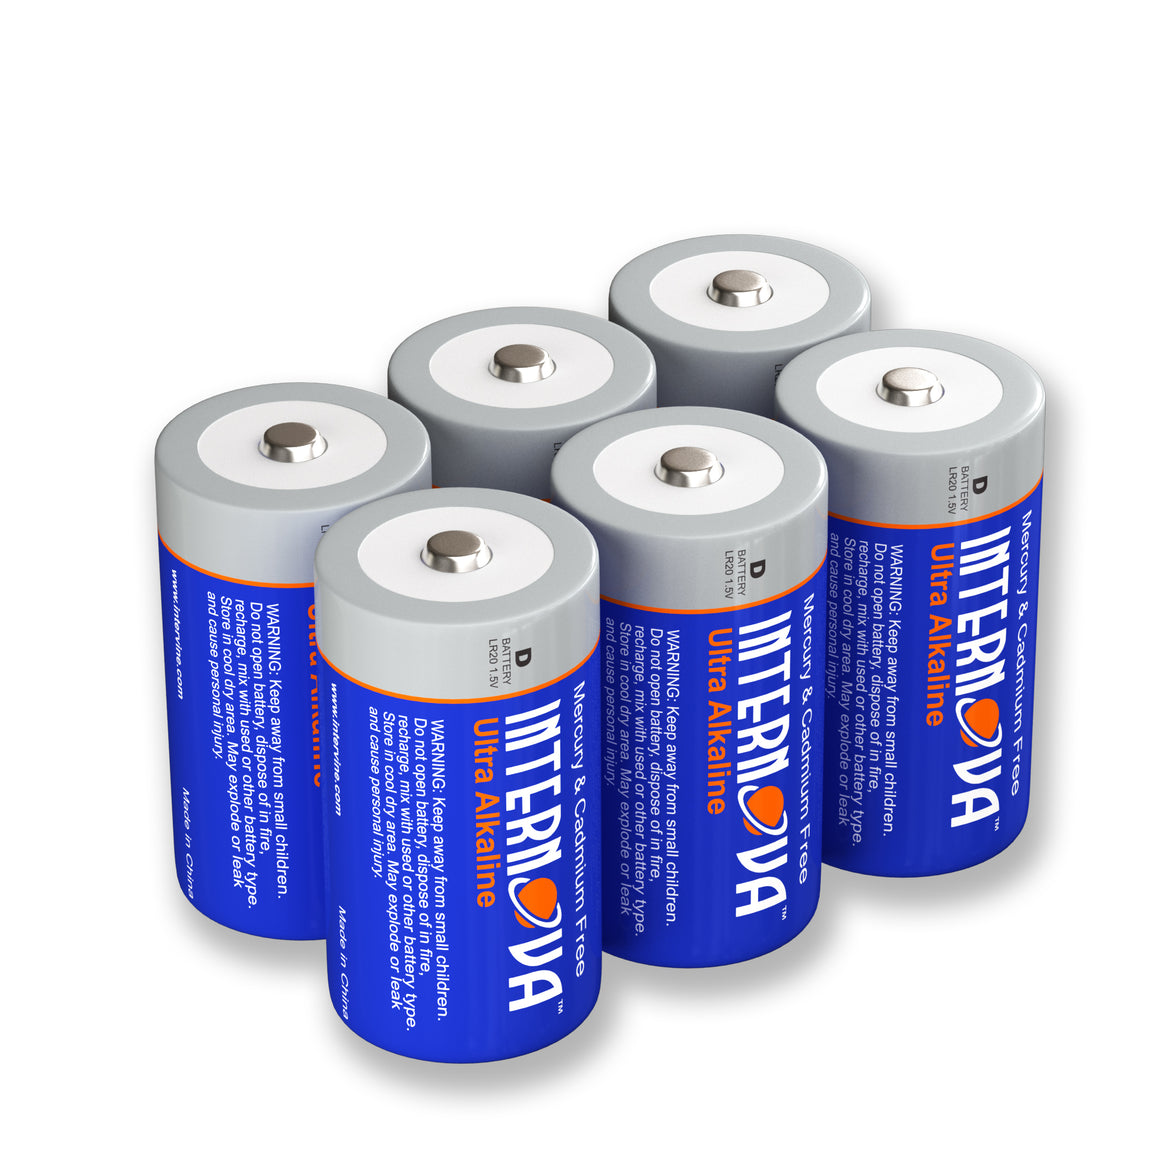 Internova Ultra Alkaline D Batteries, LR20 1.5V Cell High Performance, 6 Pack